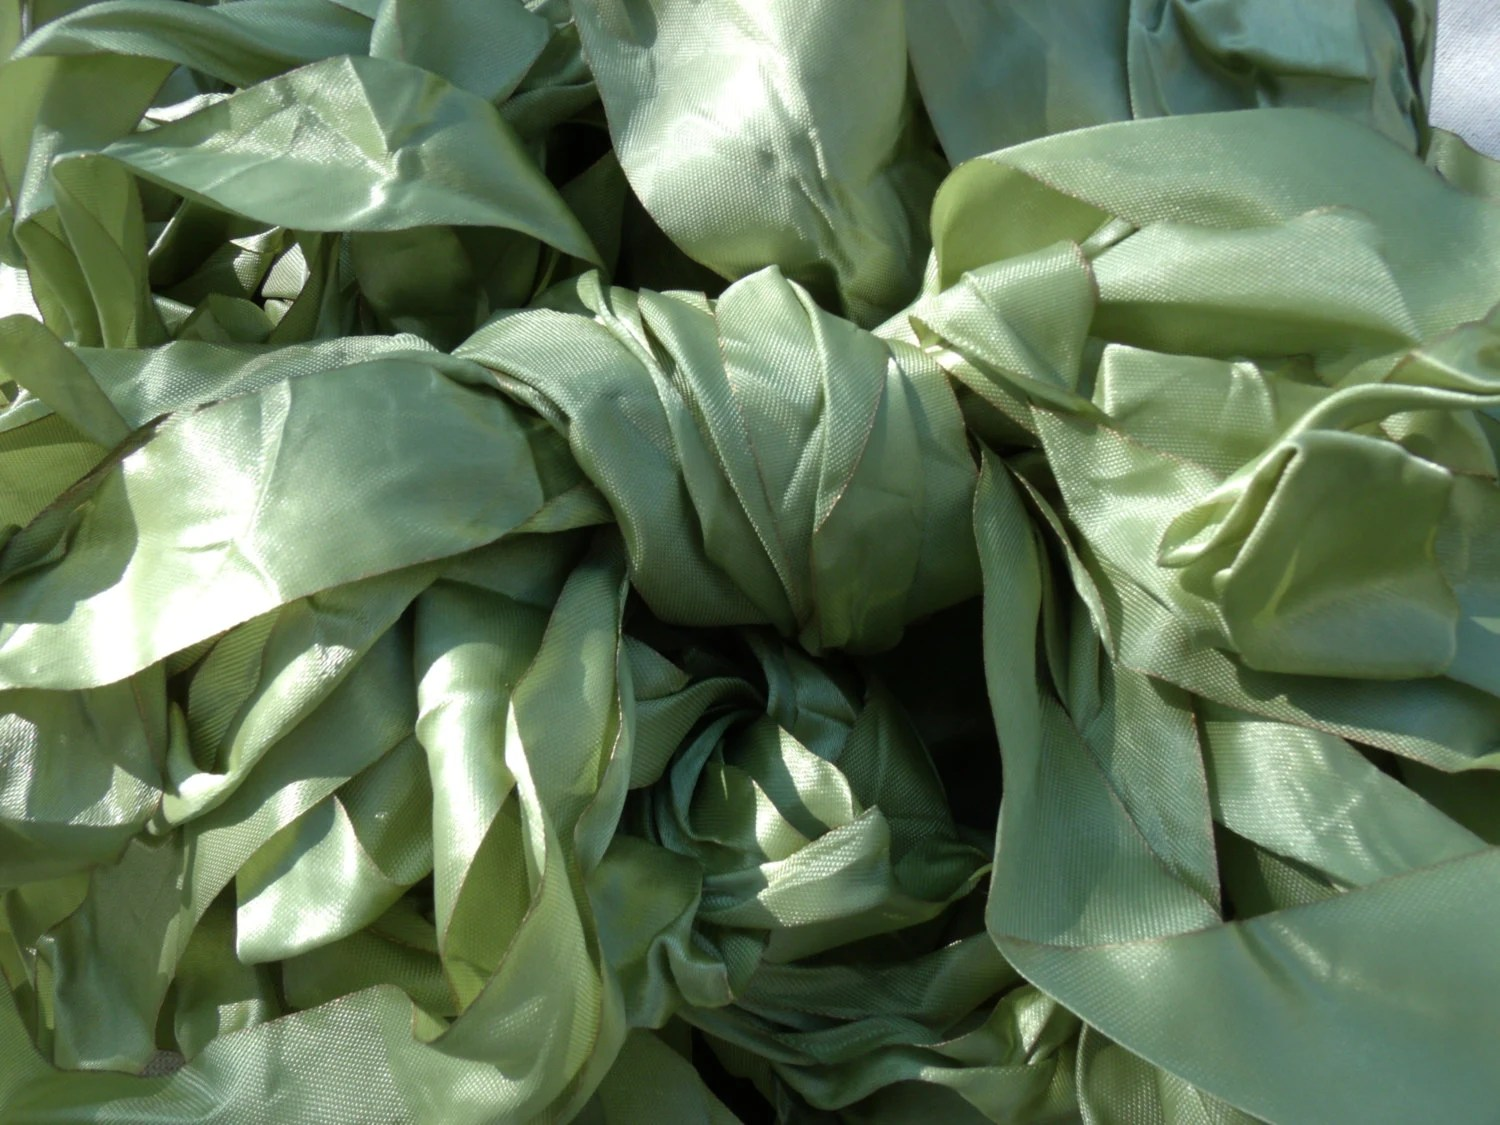 """12 Yds MEDIUM width """"PALE GREEN"""" Vintage Look French Style Ribbon with Gilded Edge- For Size Description See Below - marysalaber"""